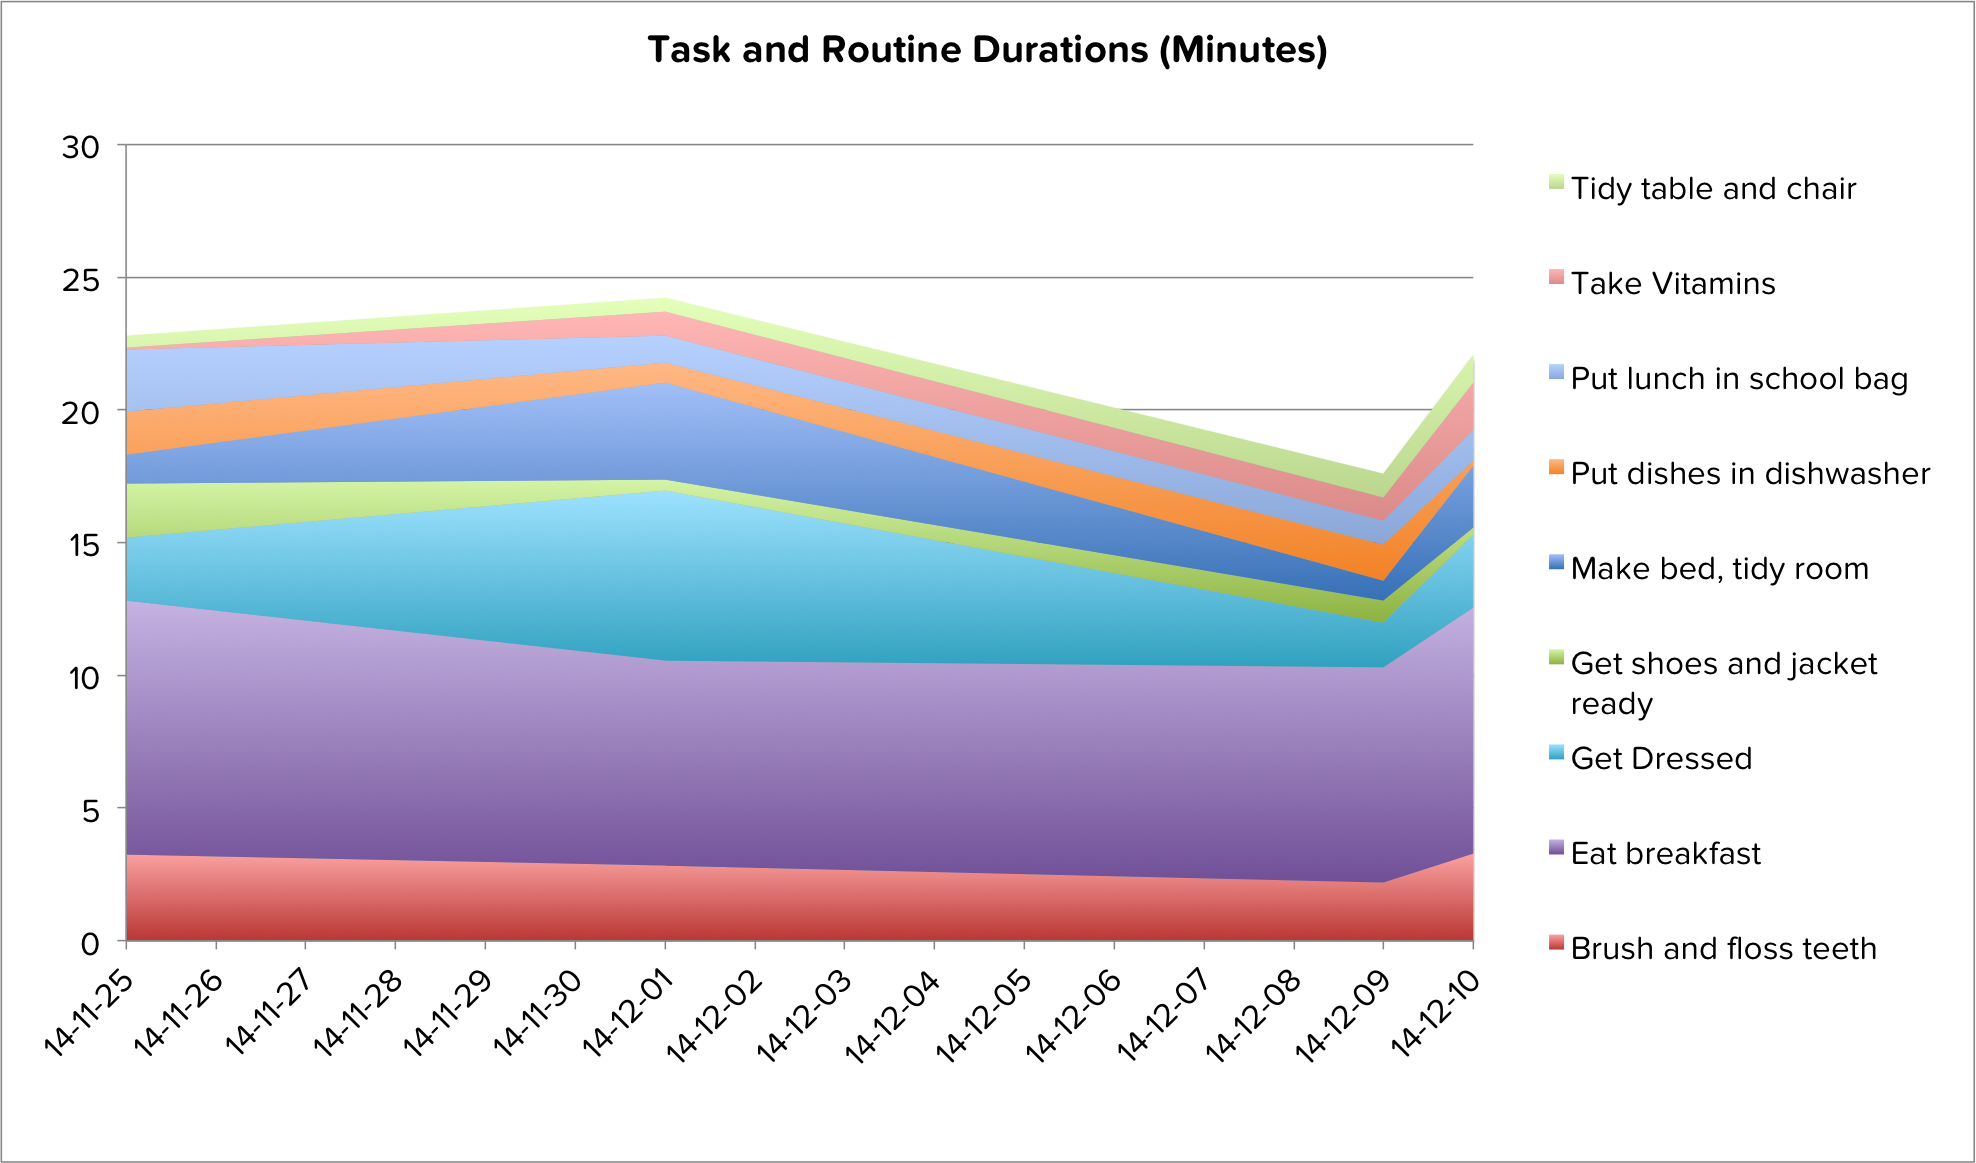 Leo's Routine Task Durations, Nov 25th to December 10th.